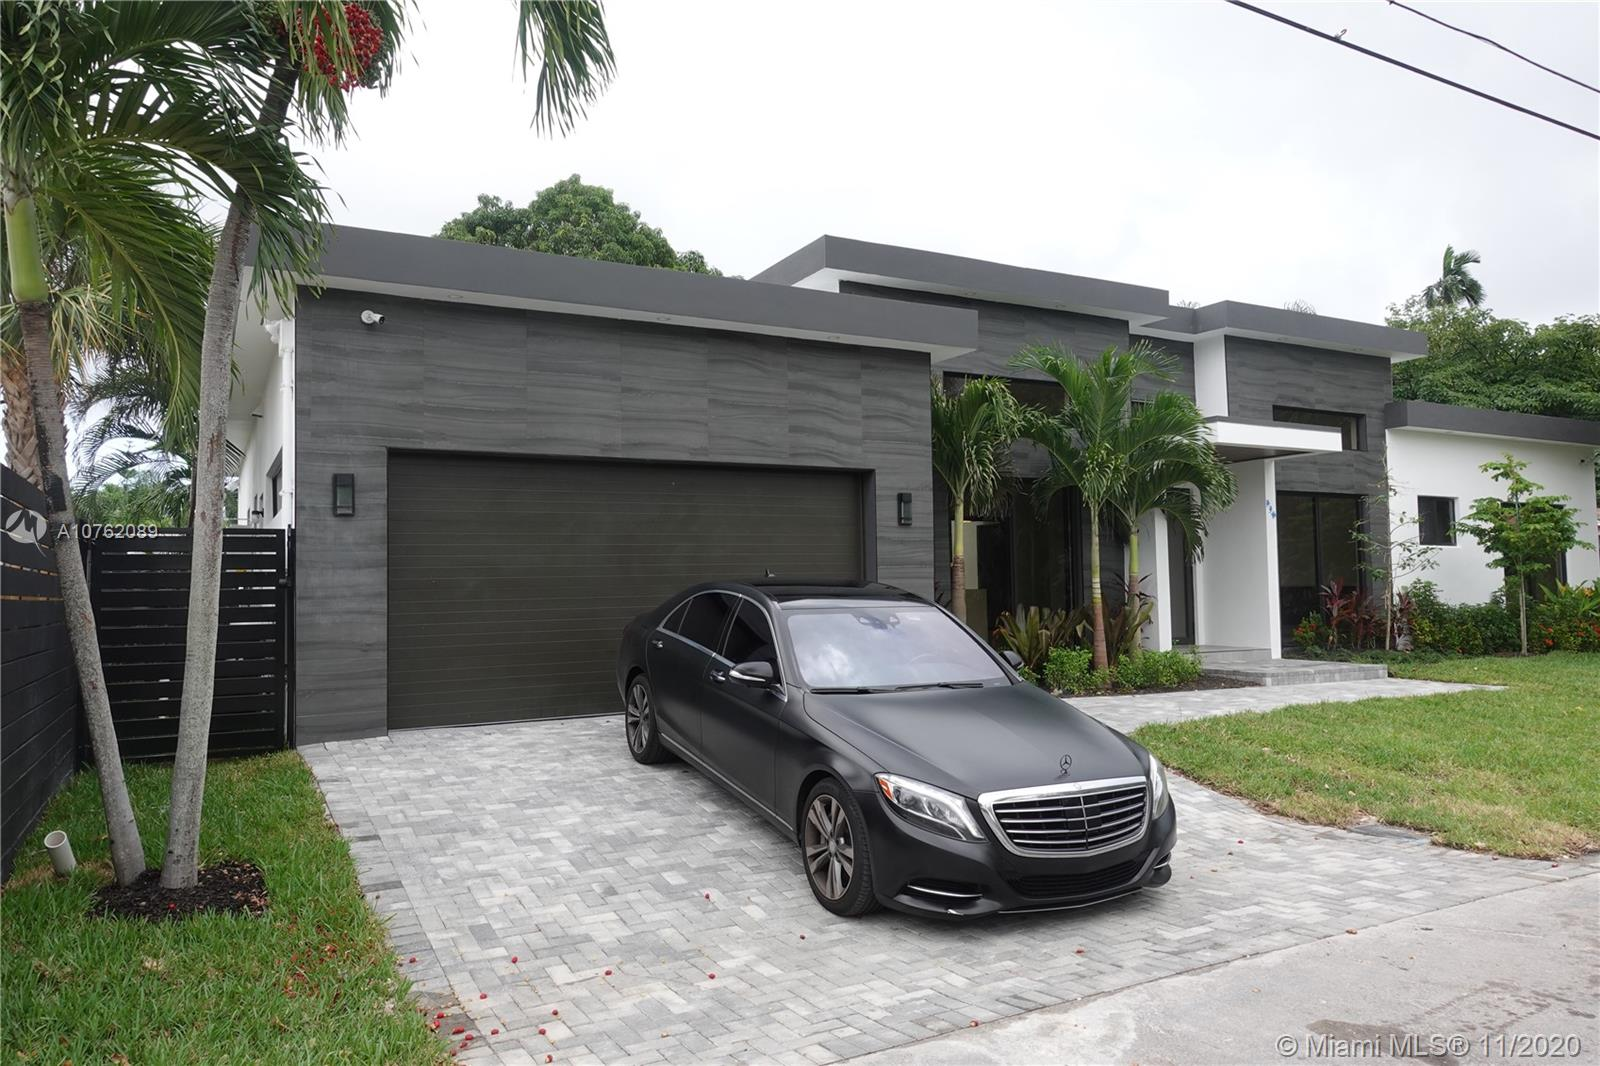 New construction, Modern open design, high celling,HOUSE IS GOING TO BE 3023 SF 2563 UNDER AIR (not as it shows on tax)